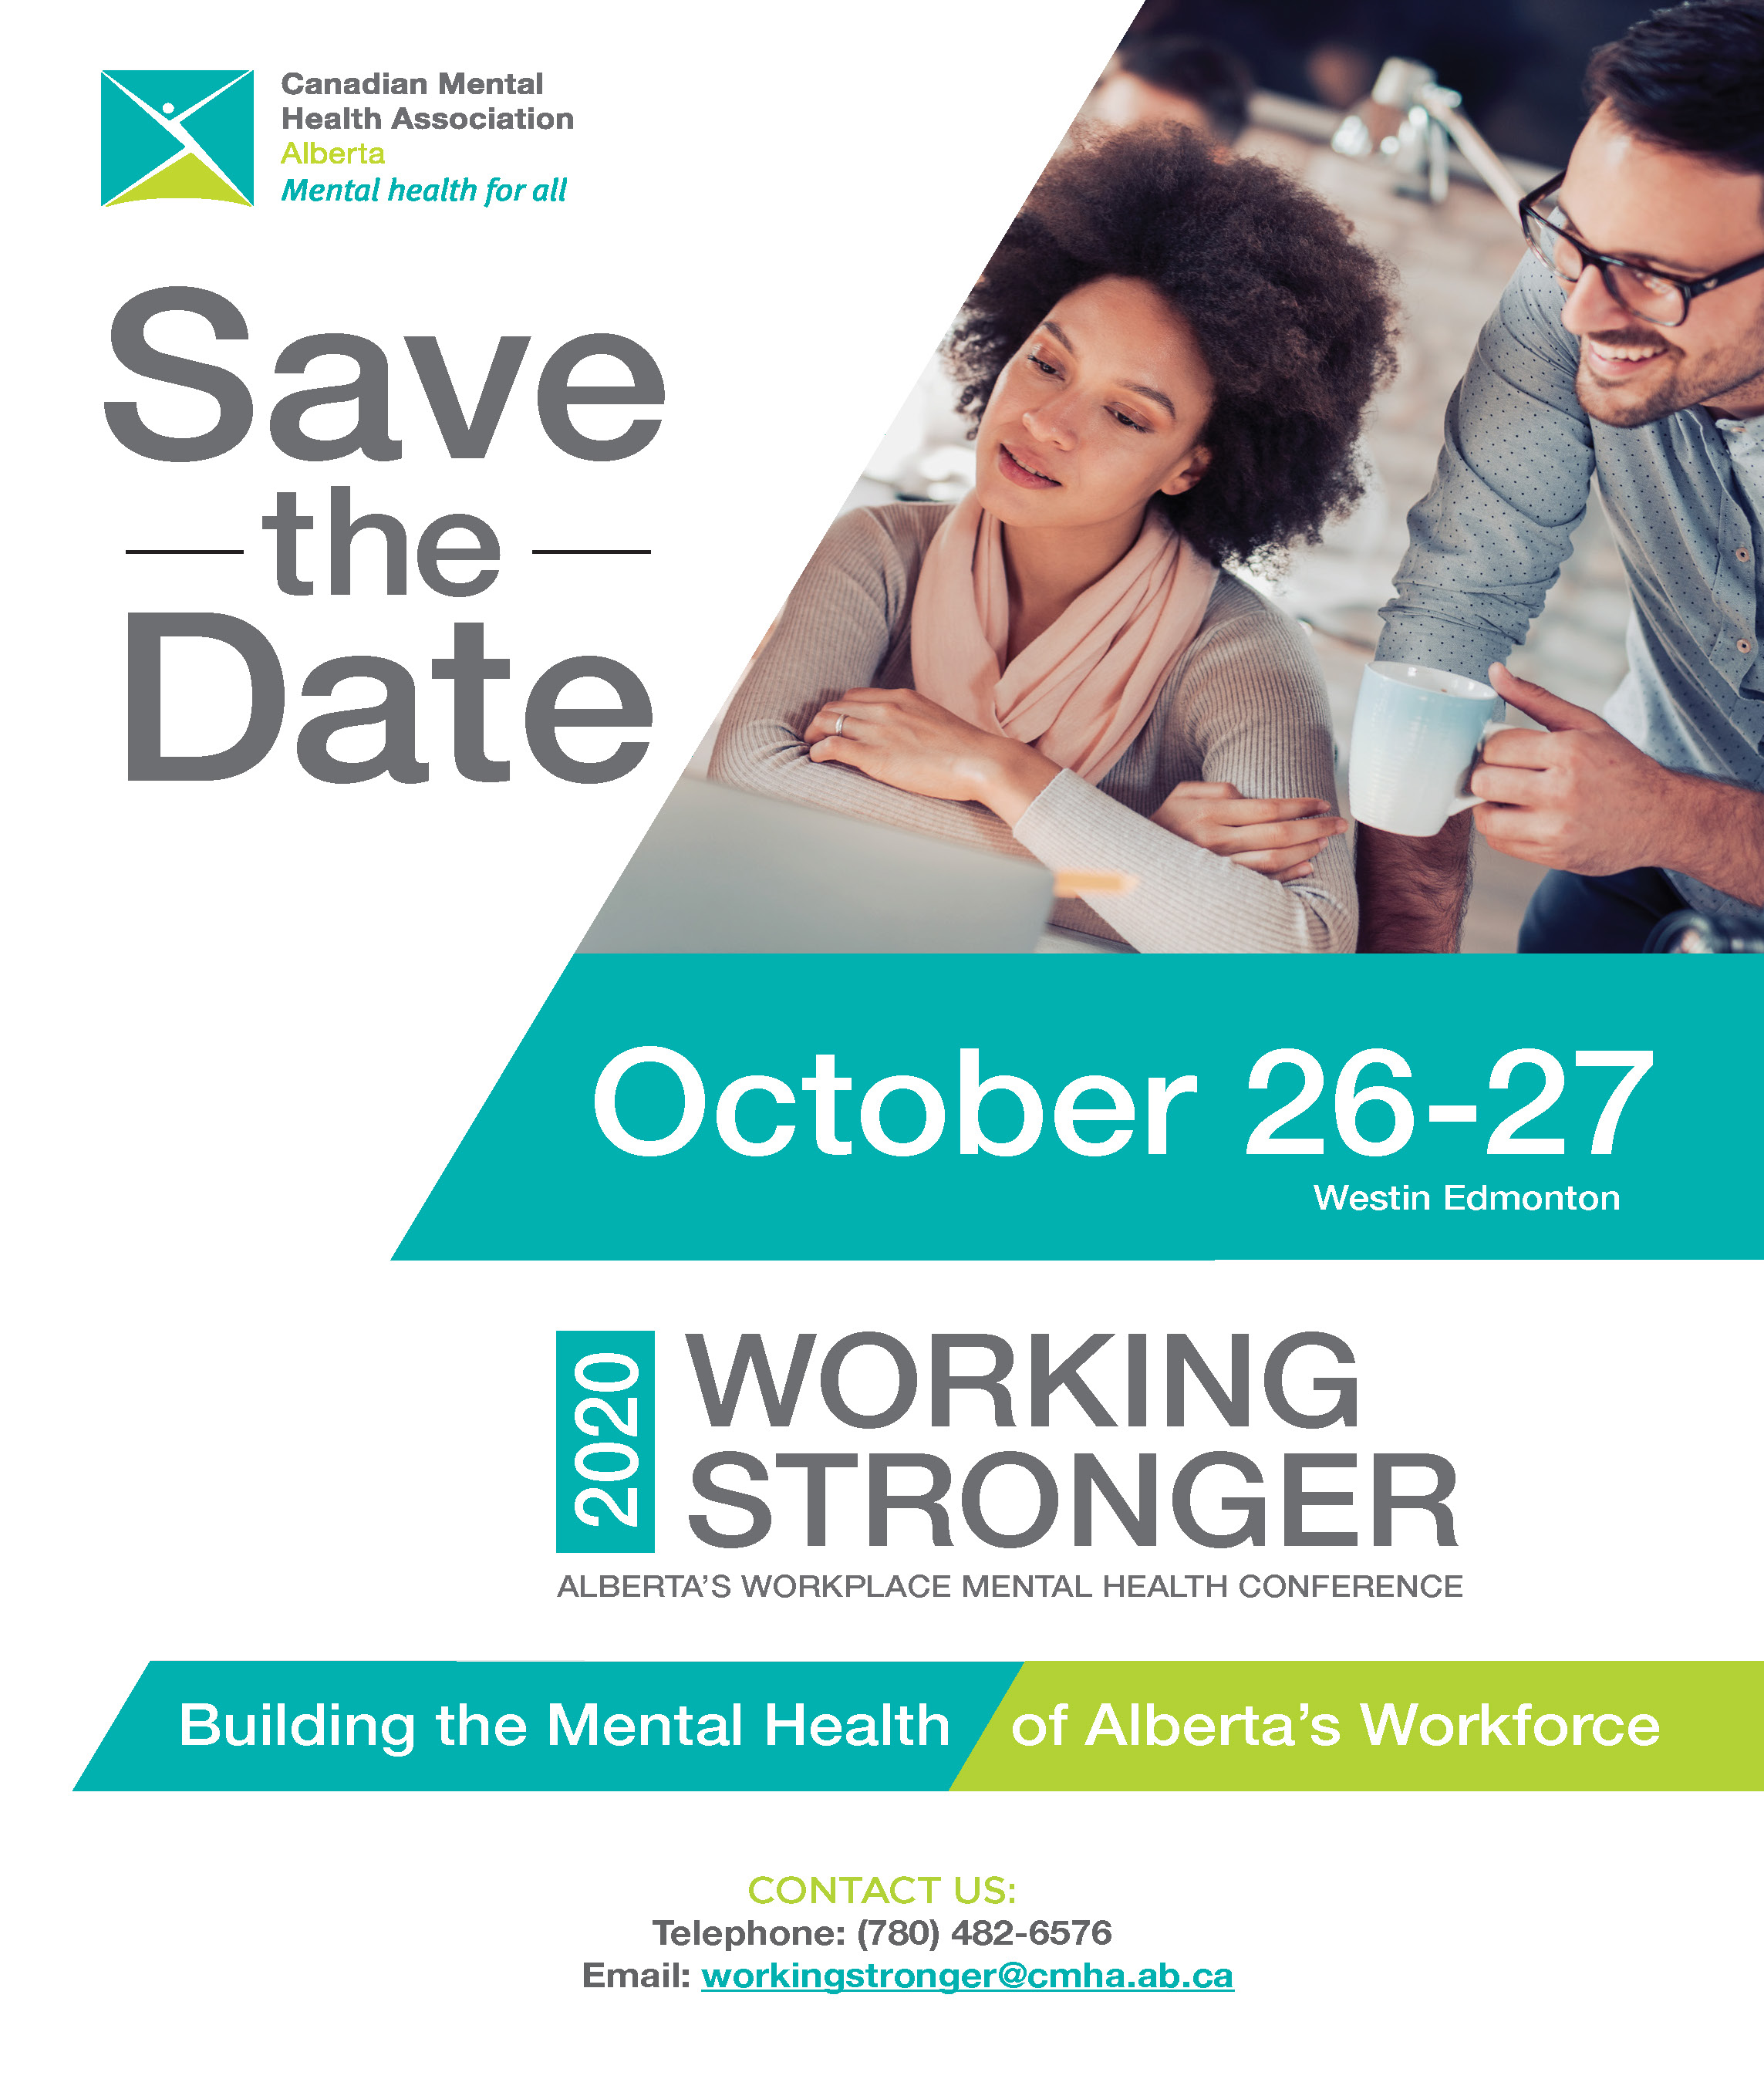 Working Stronger – Workplace Mental Health Conference